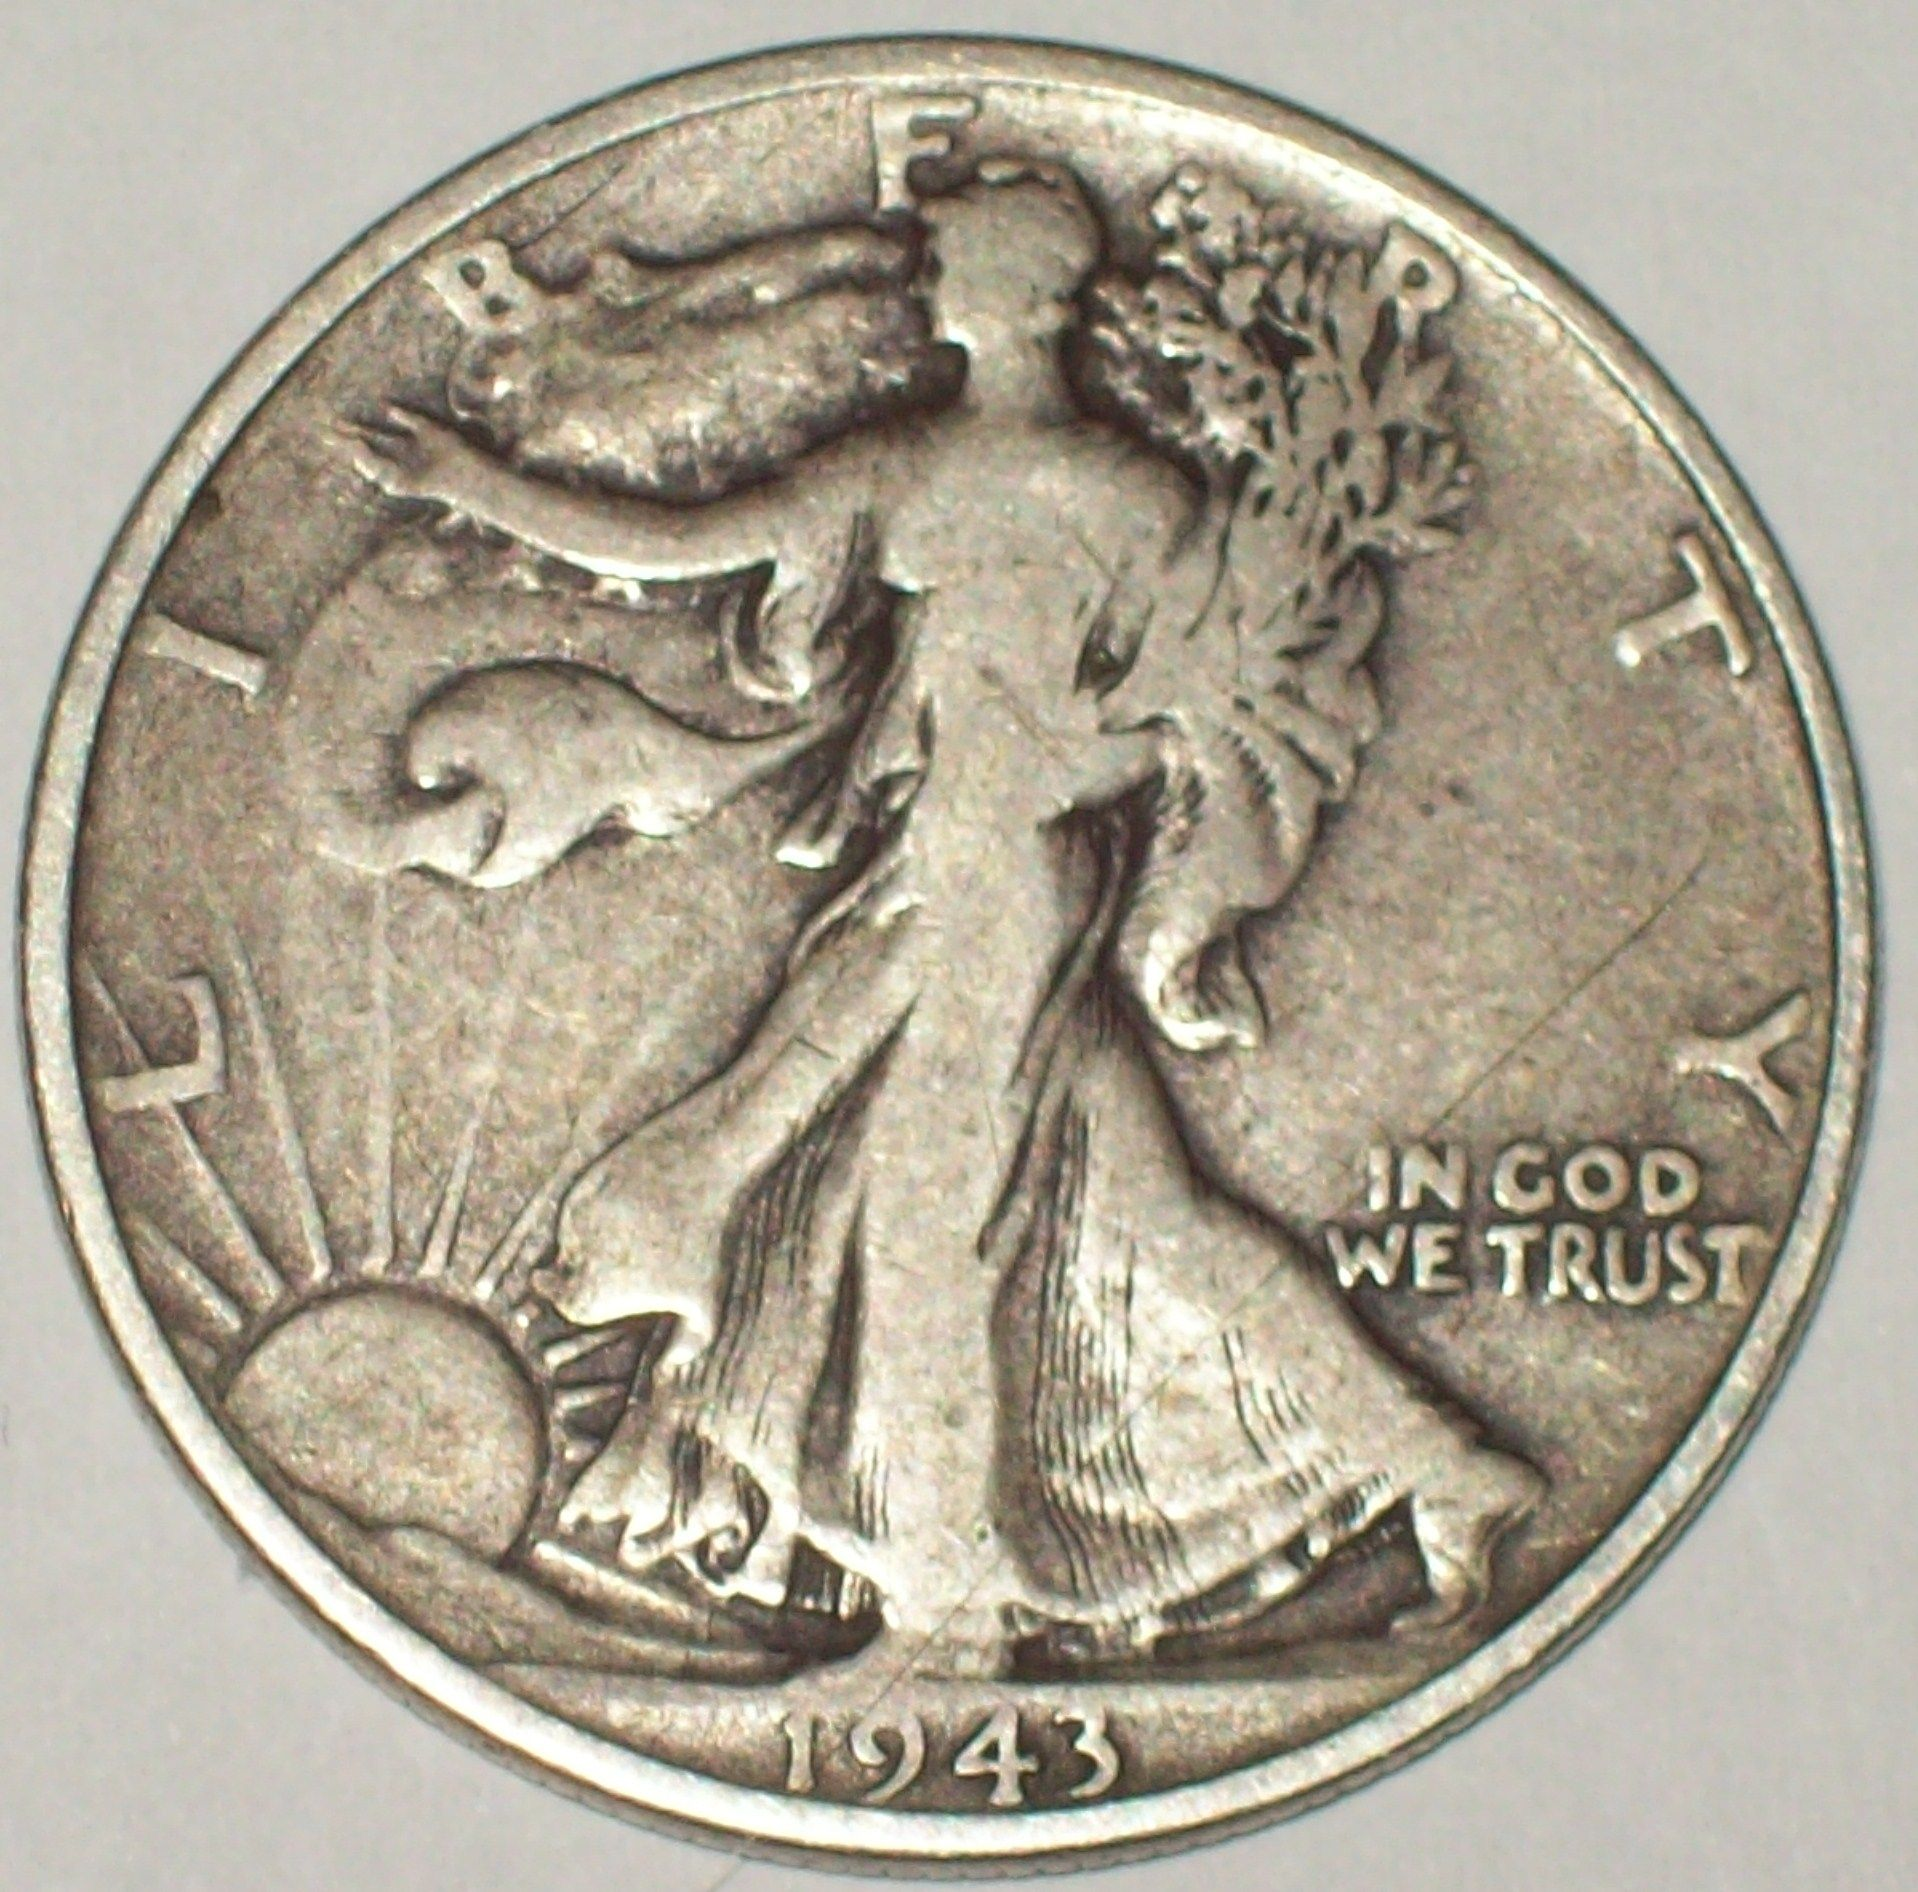 Silver Half Dollar I Believe This Is A Silver Dollar